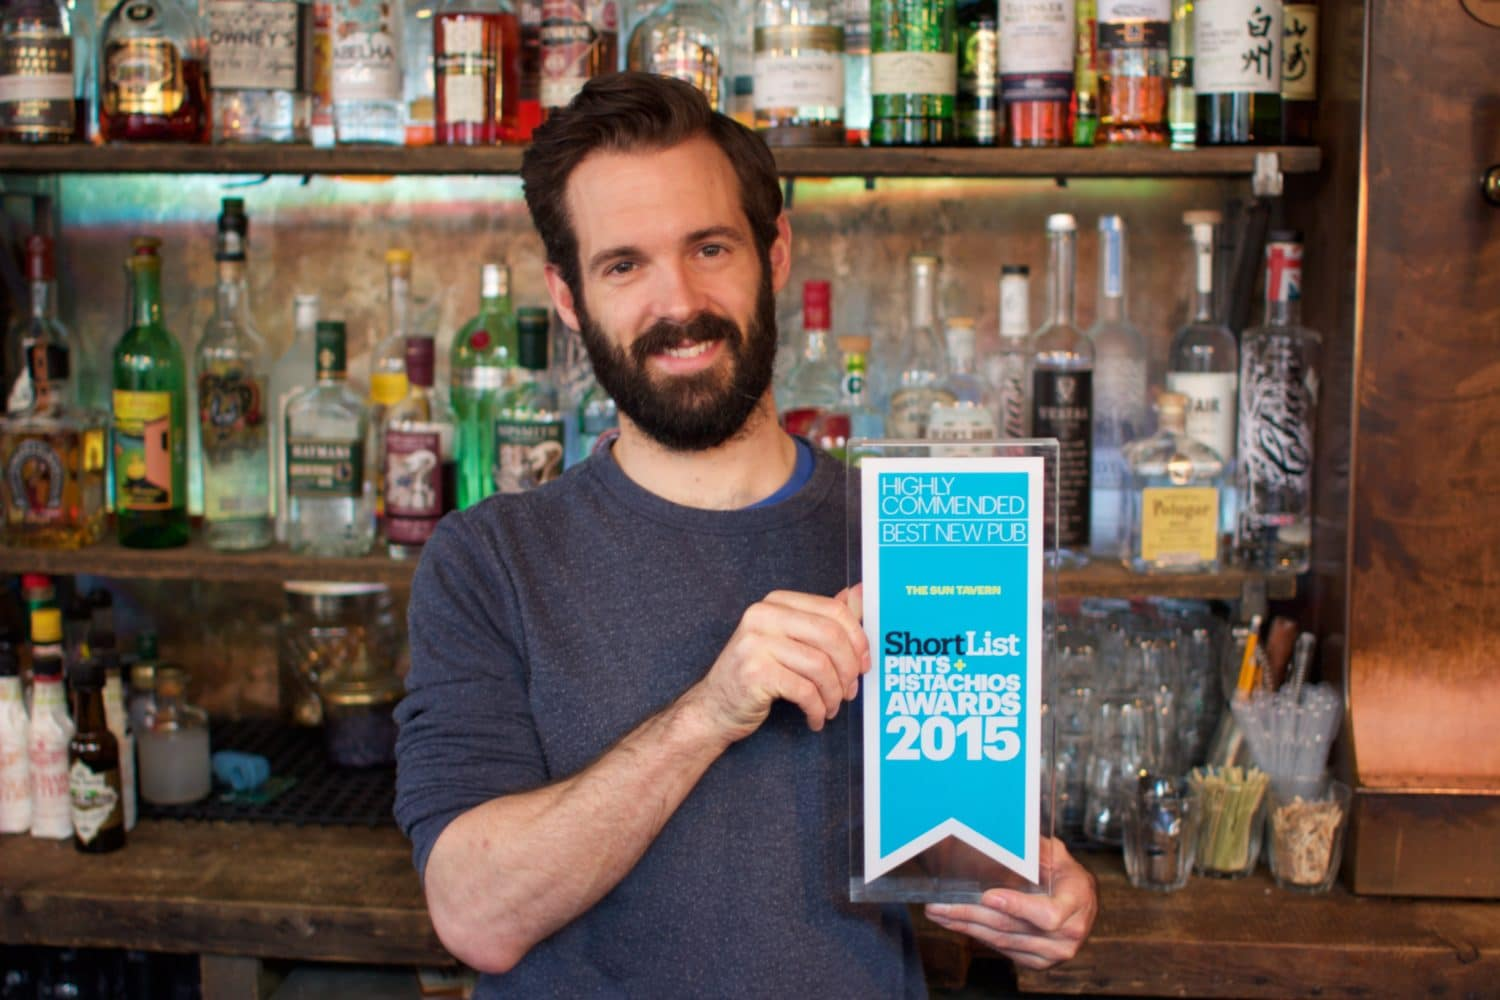 thesuntavern-shortlist-magazine-trophy-Barry-cocktail-bar-bethnalgreen-02